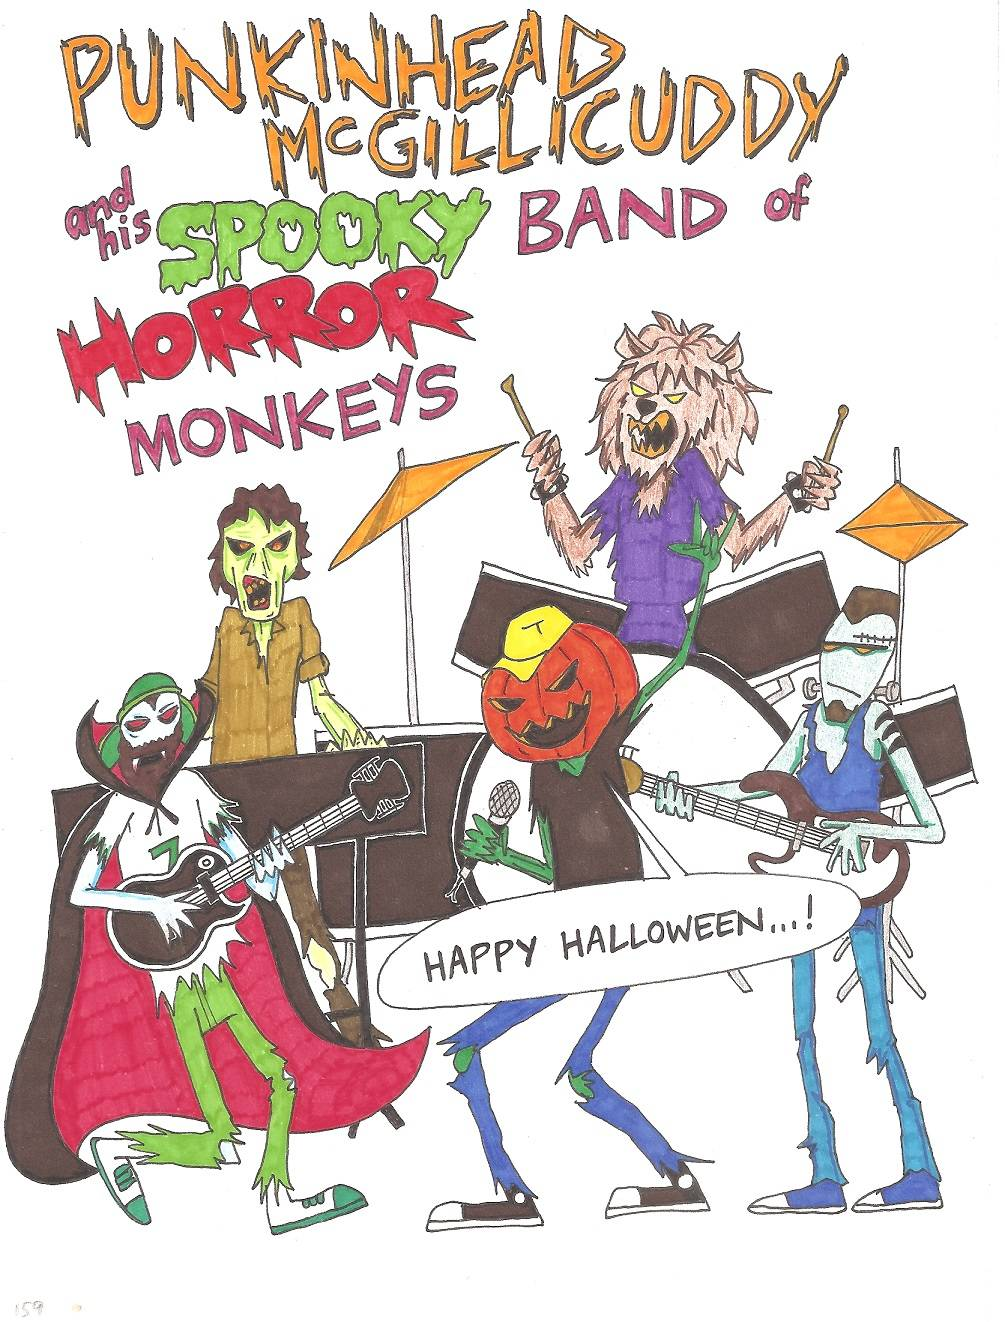 Episode 159 - Punkinhead McGillicuddy and his Spooky Band of Horror Monkeys